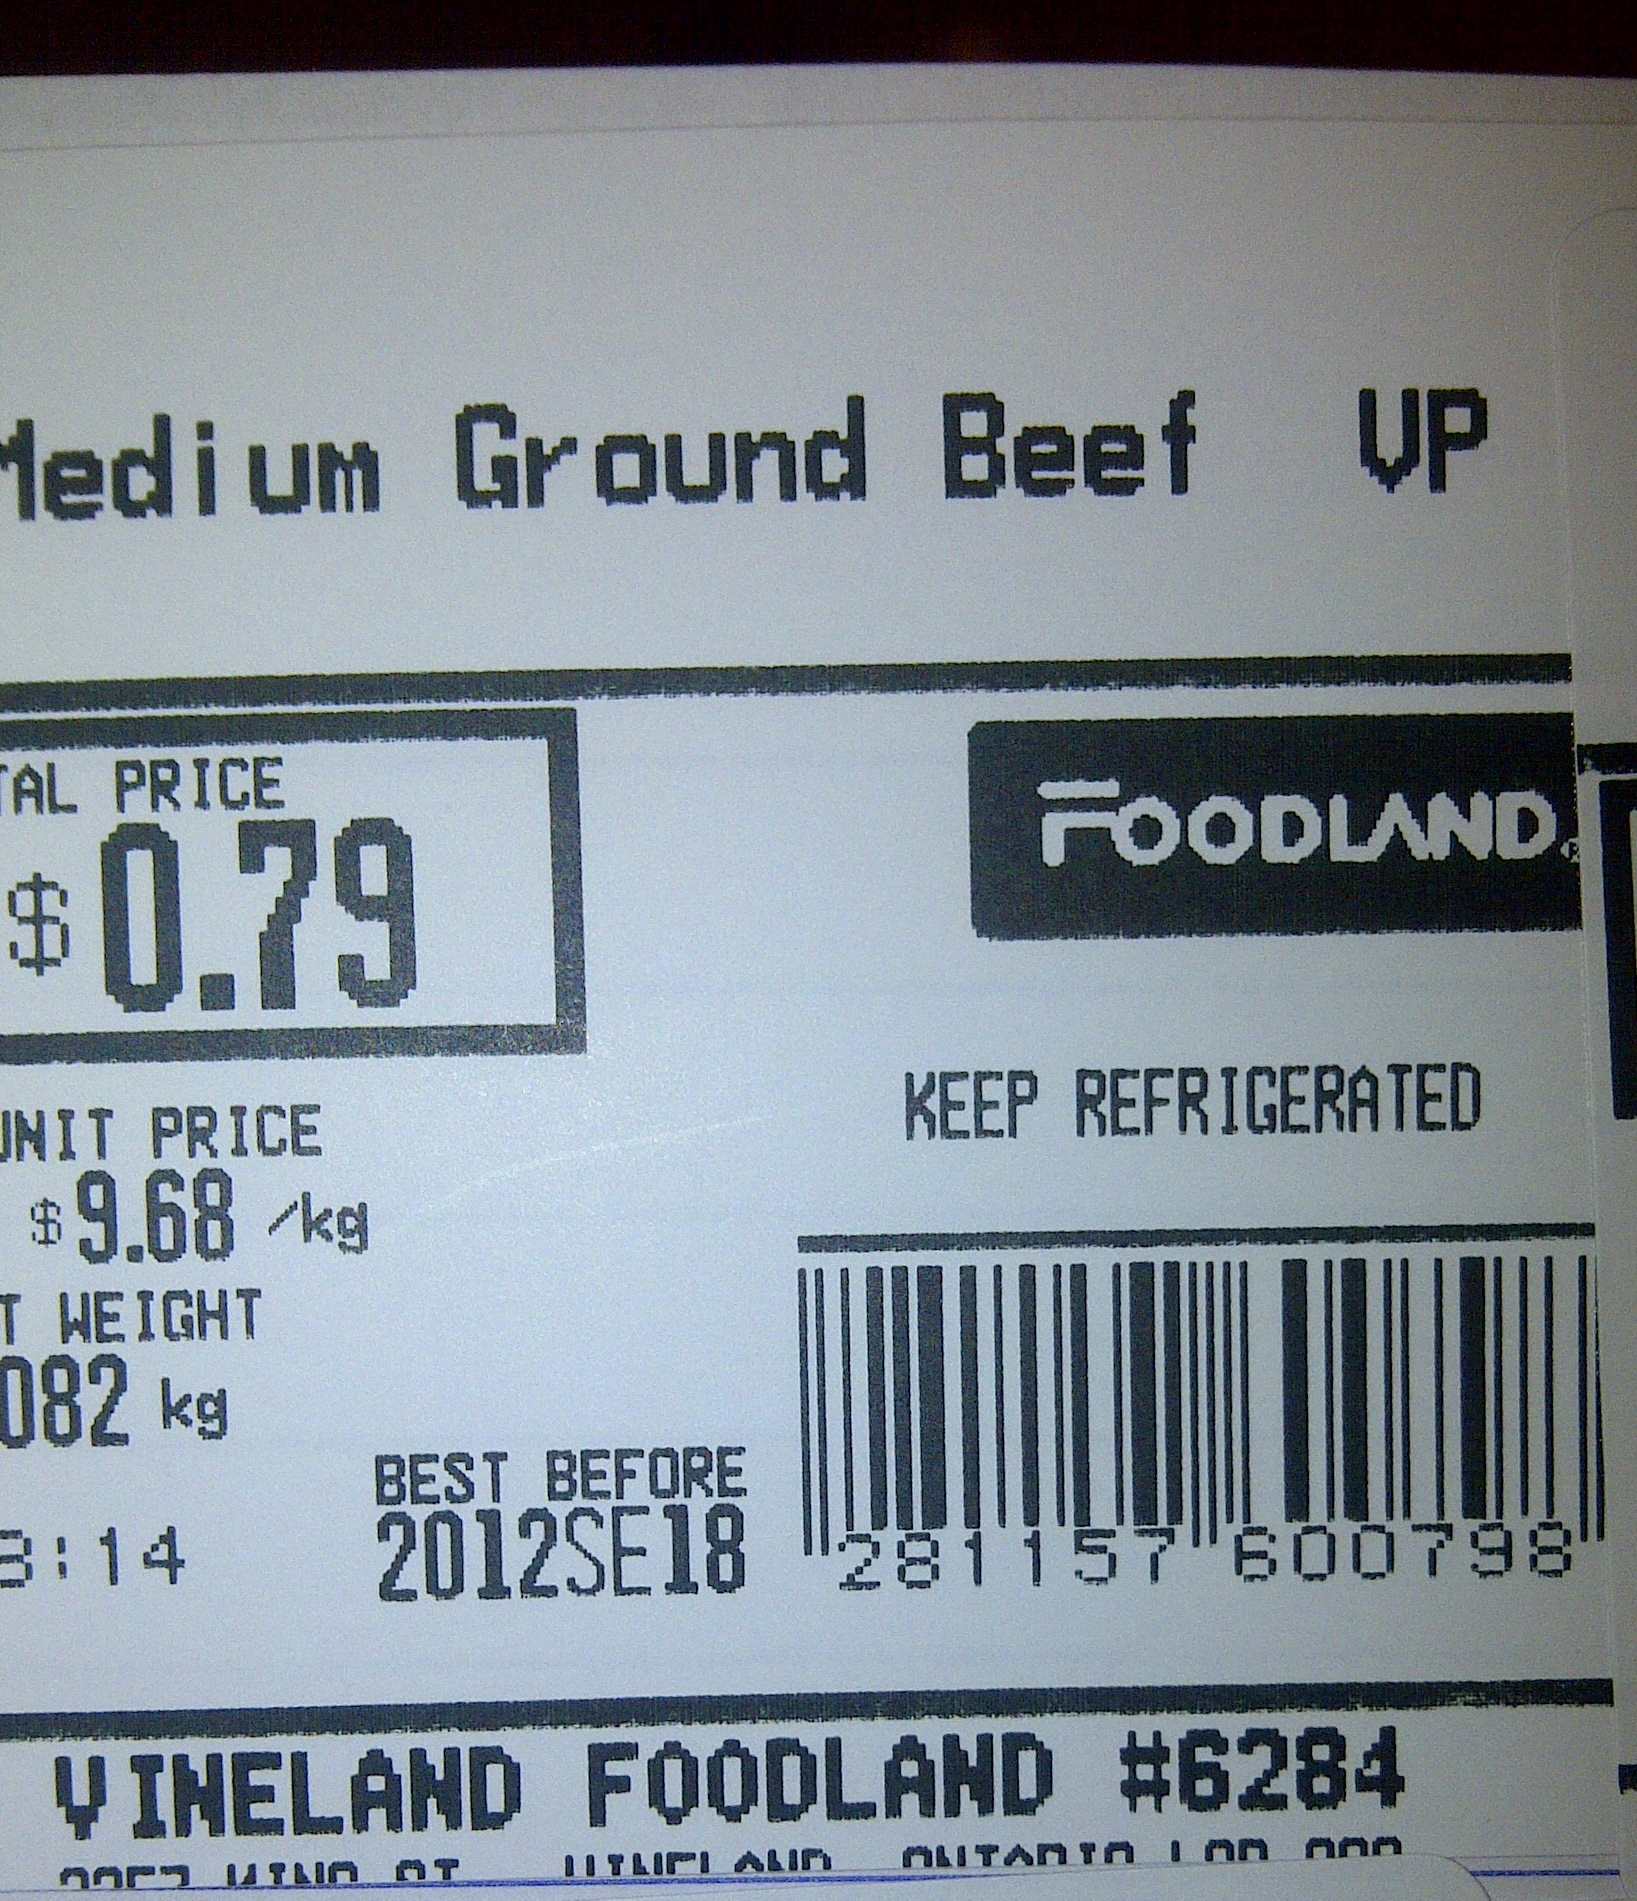 Foodland-Medium Ground Beef VP